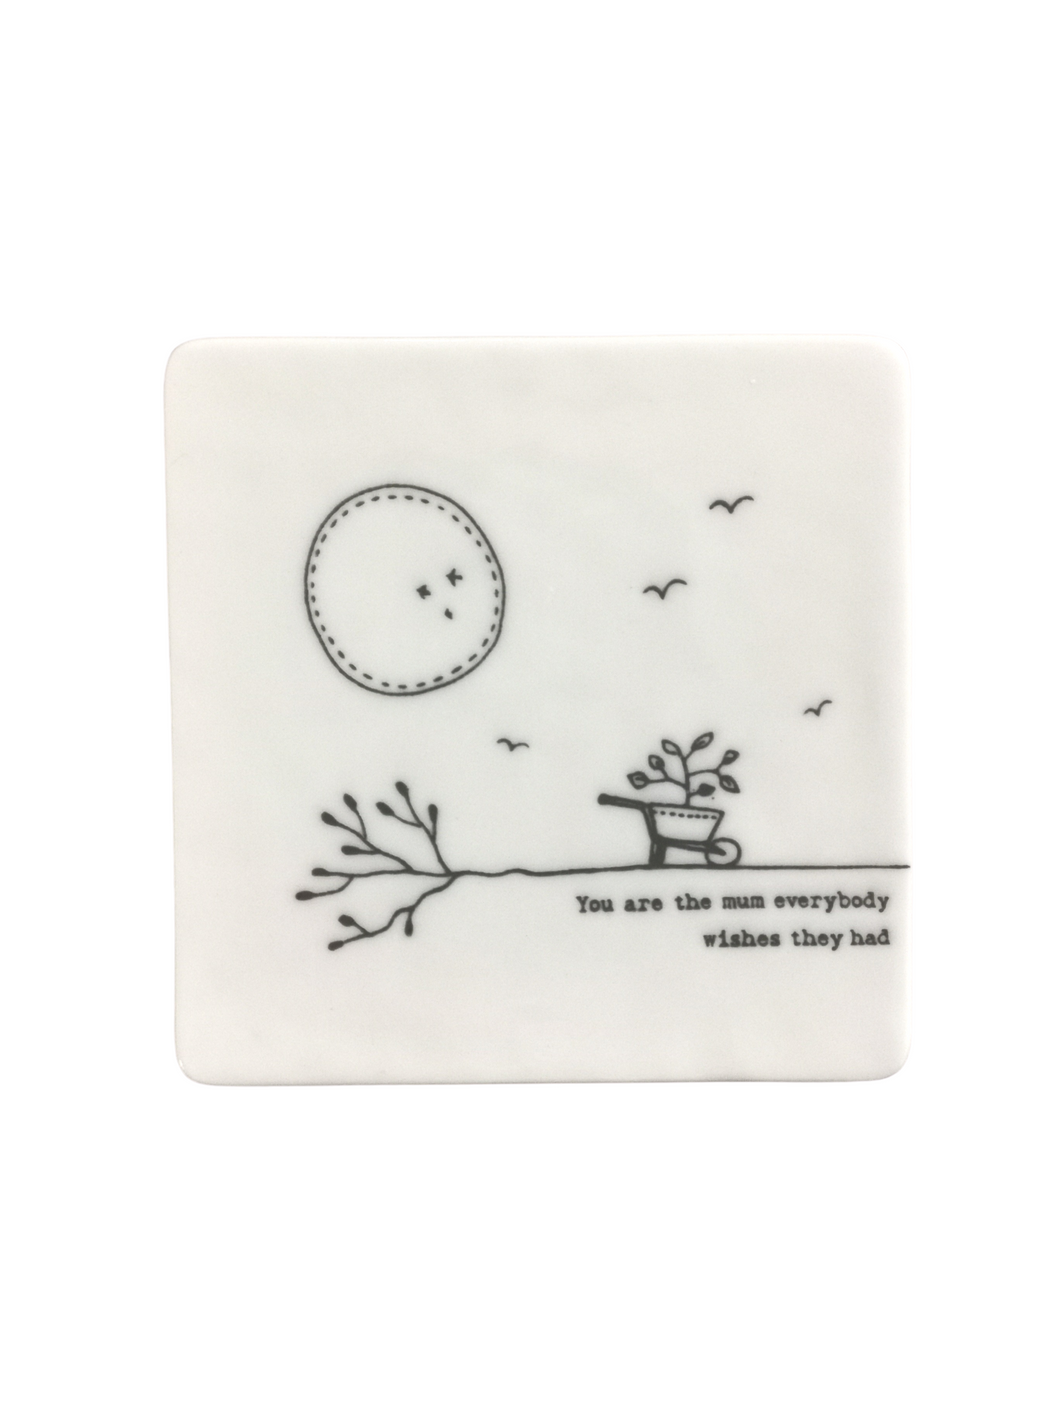 East of India - Porcelain Square Coaster - You Are The Mum